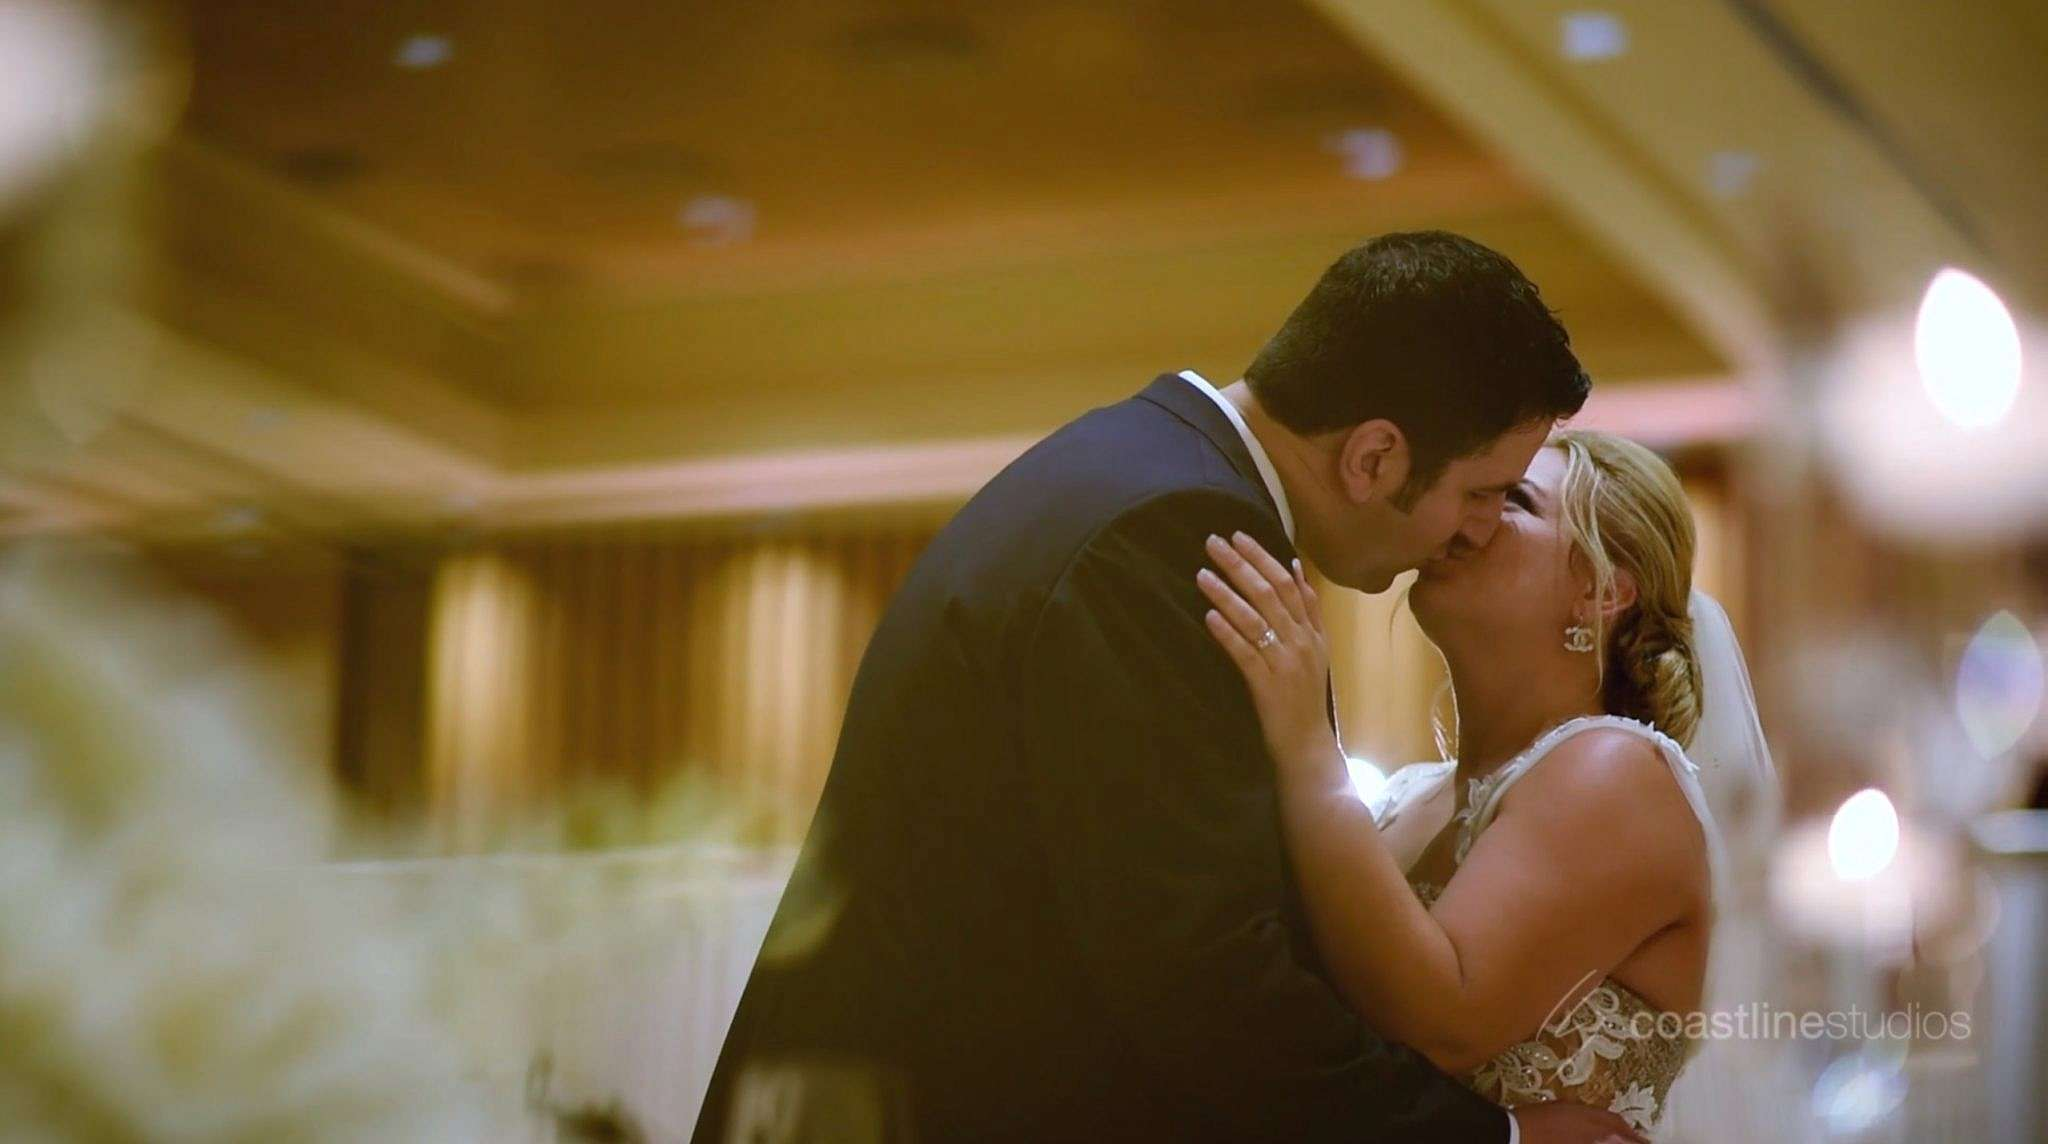 Natasha + Christos' Theatrical Wedding Trailer